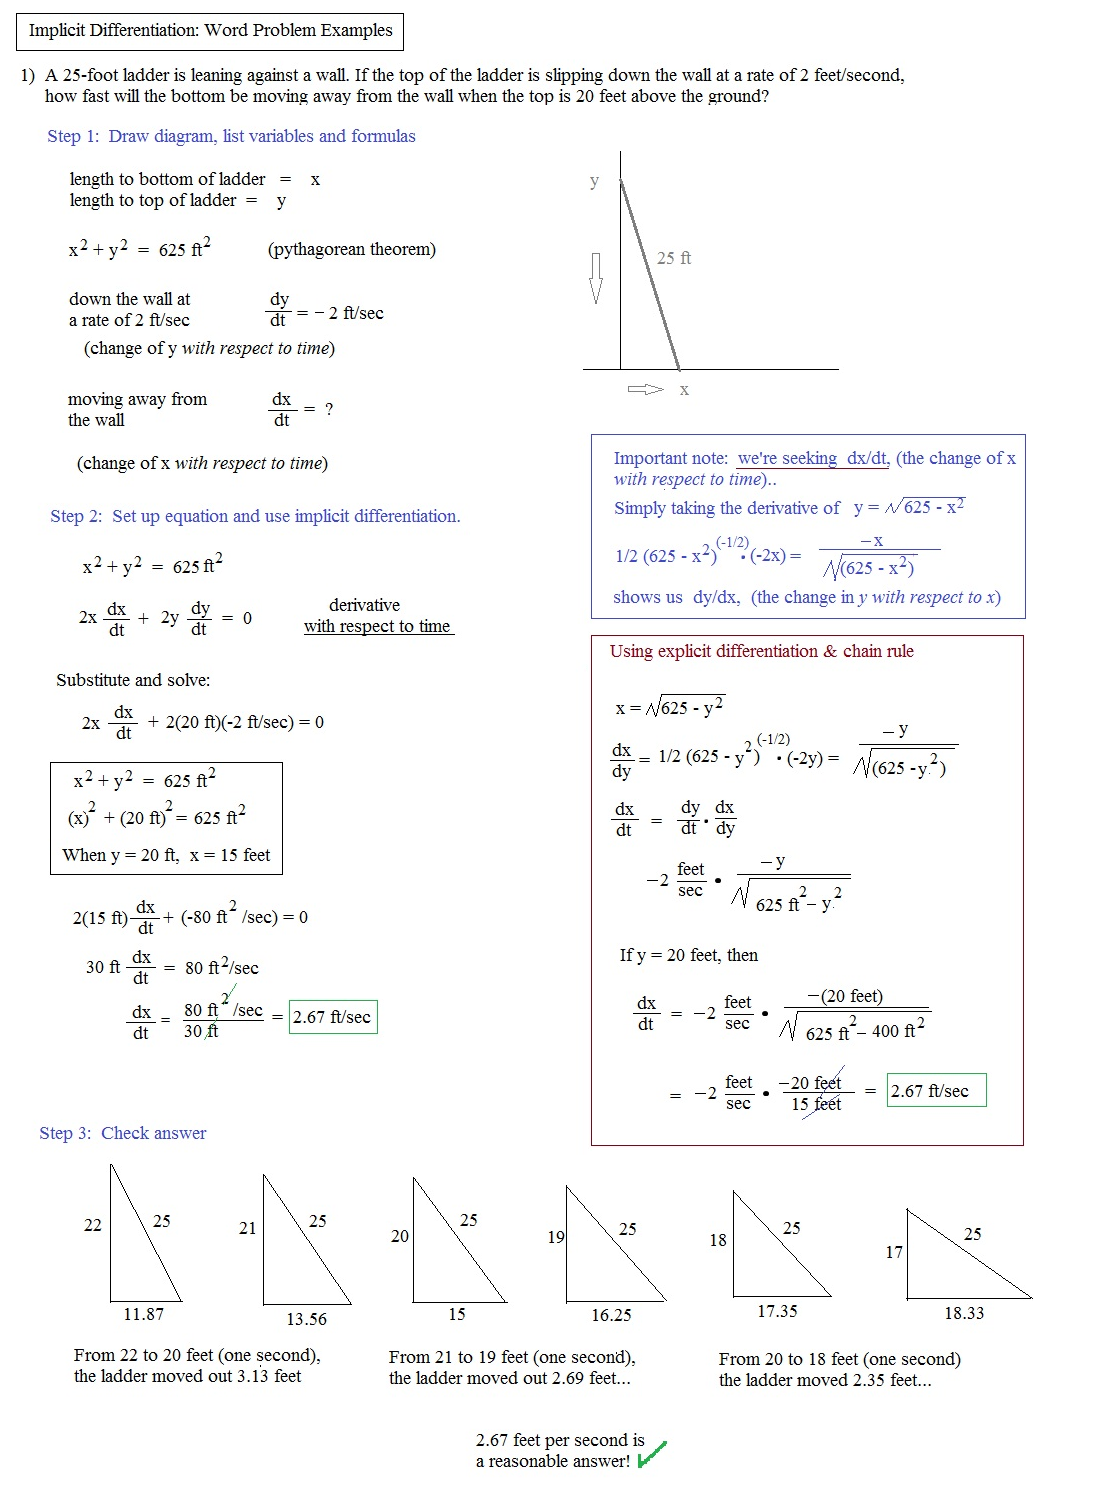 Implicit Differentiation Problems And Solutions Pdf